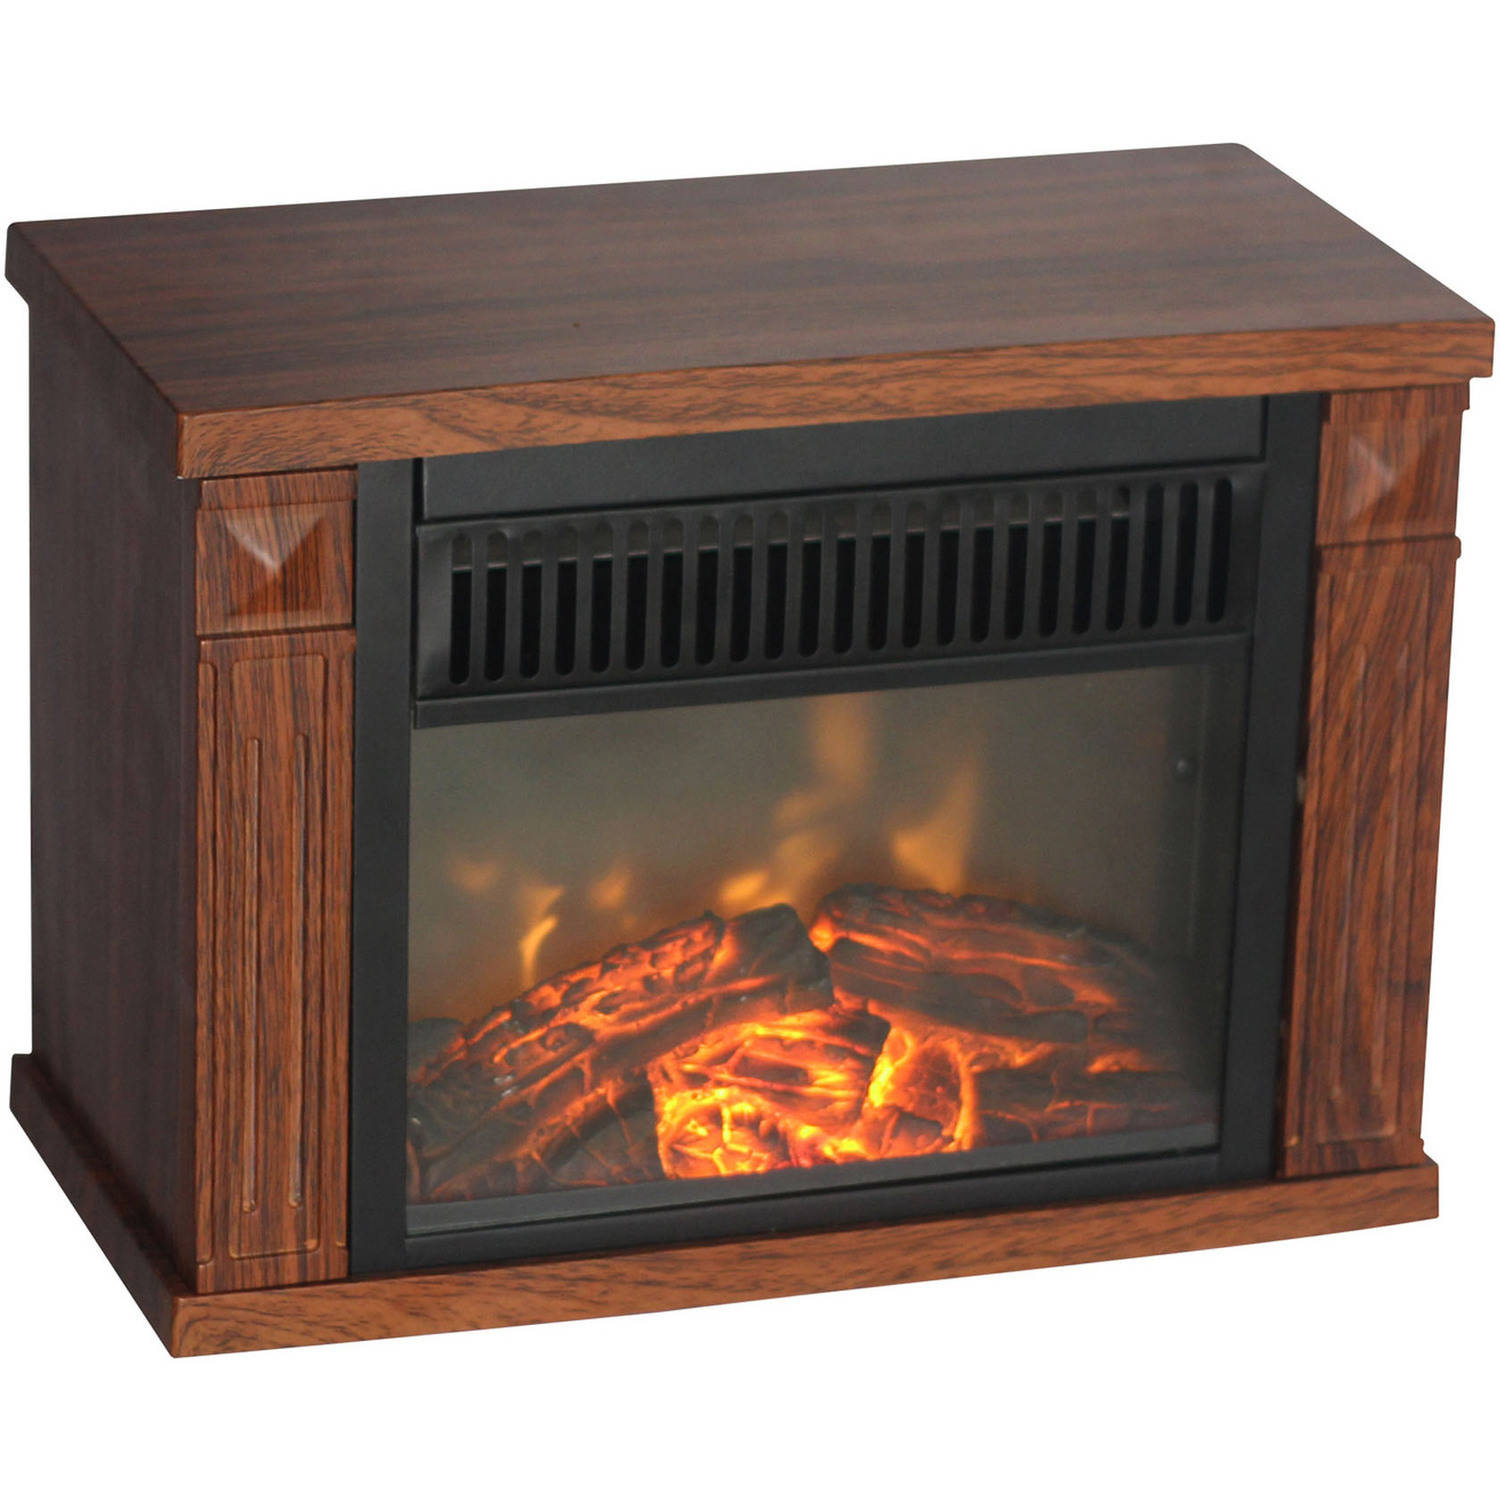 - Comfort Glow Bookshelf Mini Fireplace, Wood Grain - Walmart.com